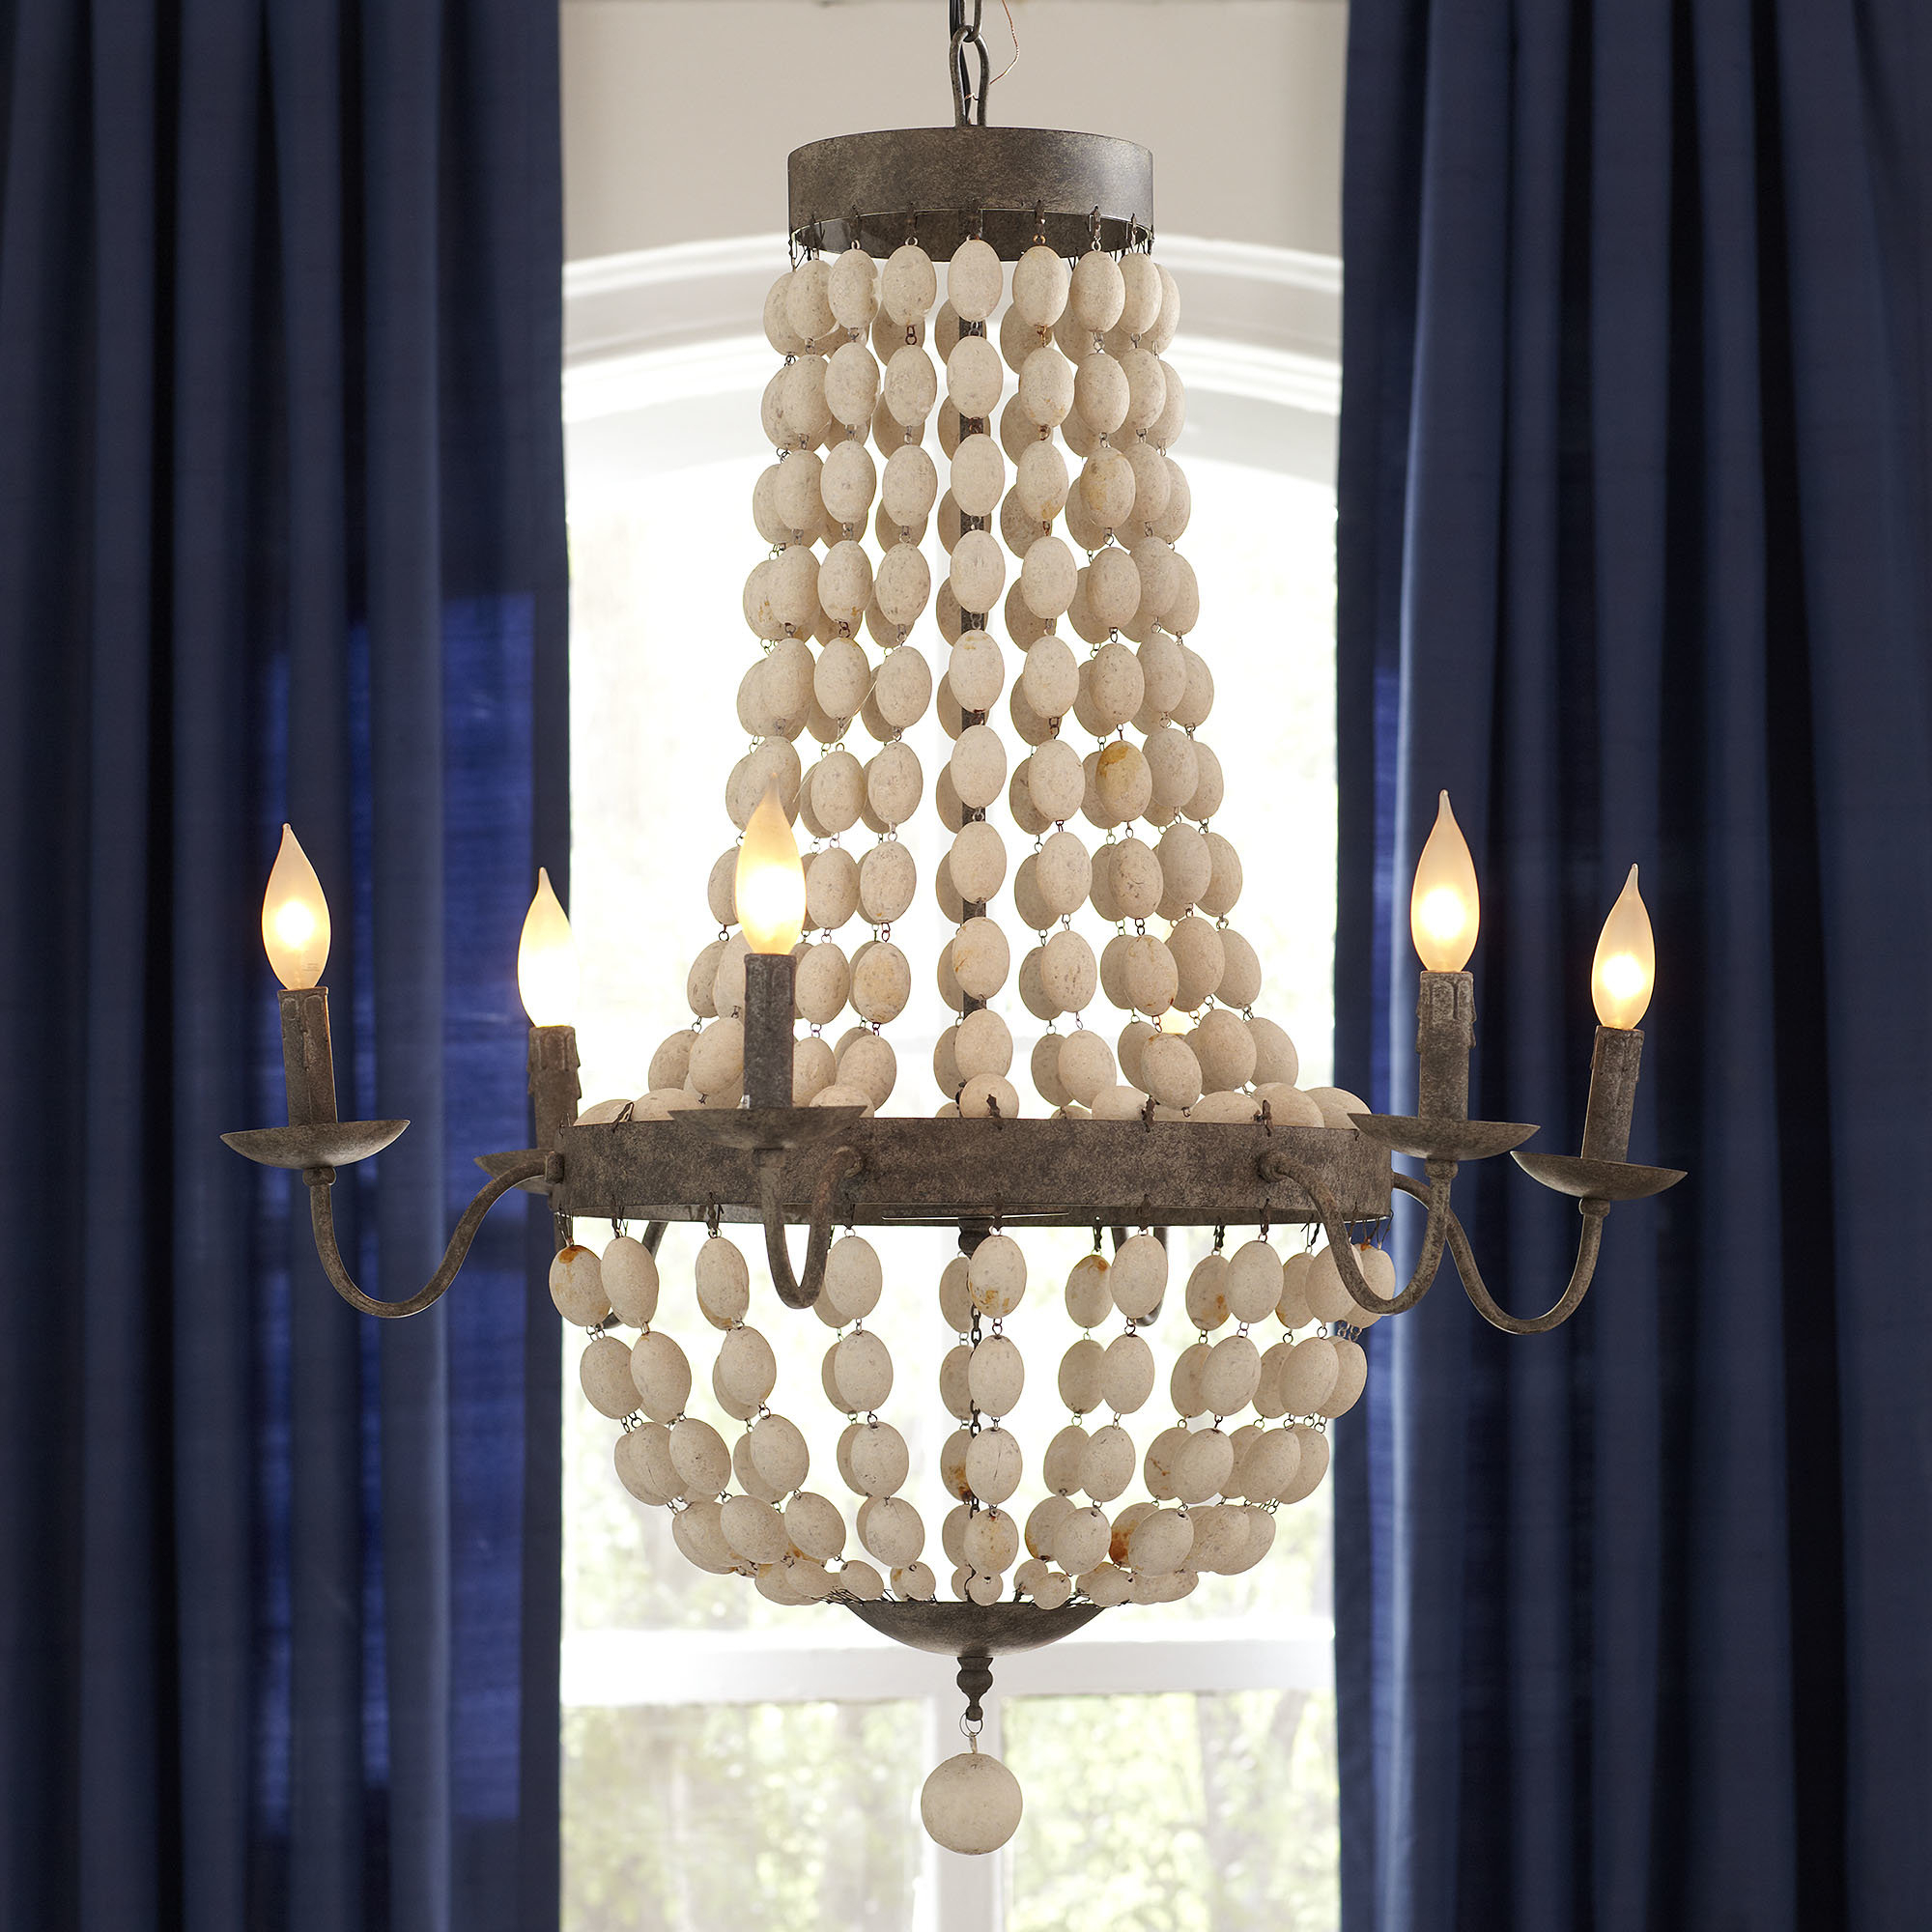 Bargas 6 Light Empire Chandelier In Most Up To Date Duron 5 Light Empire Chandeliers (View 1 of 20)